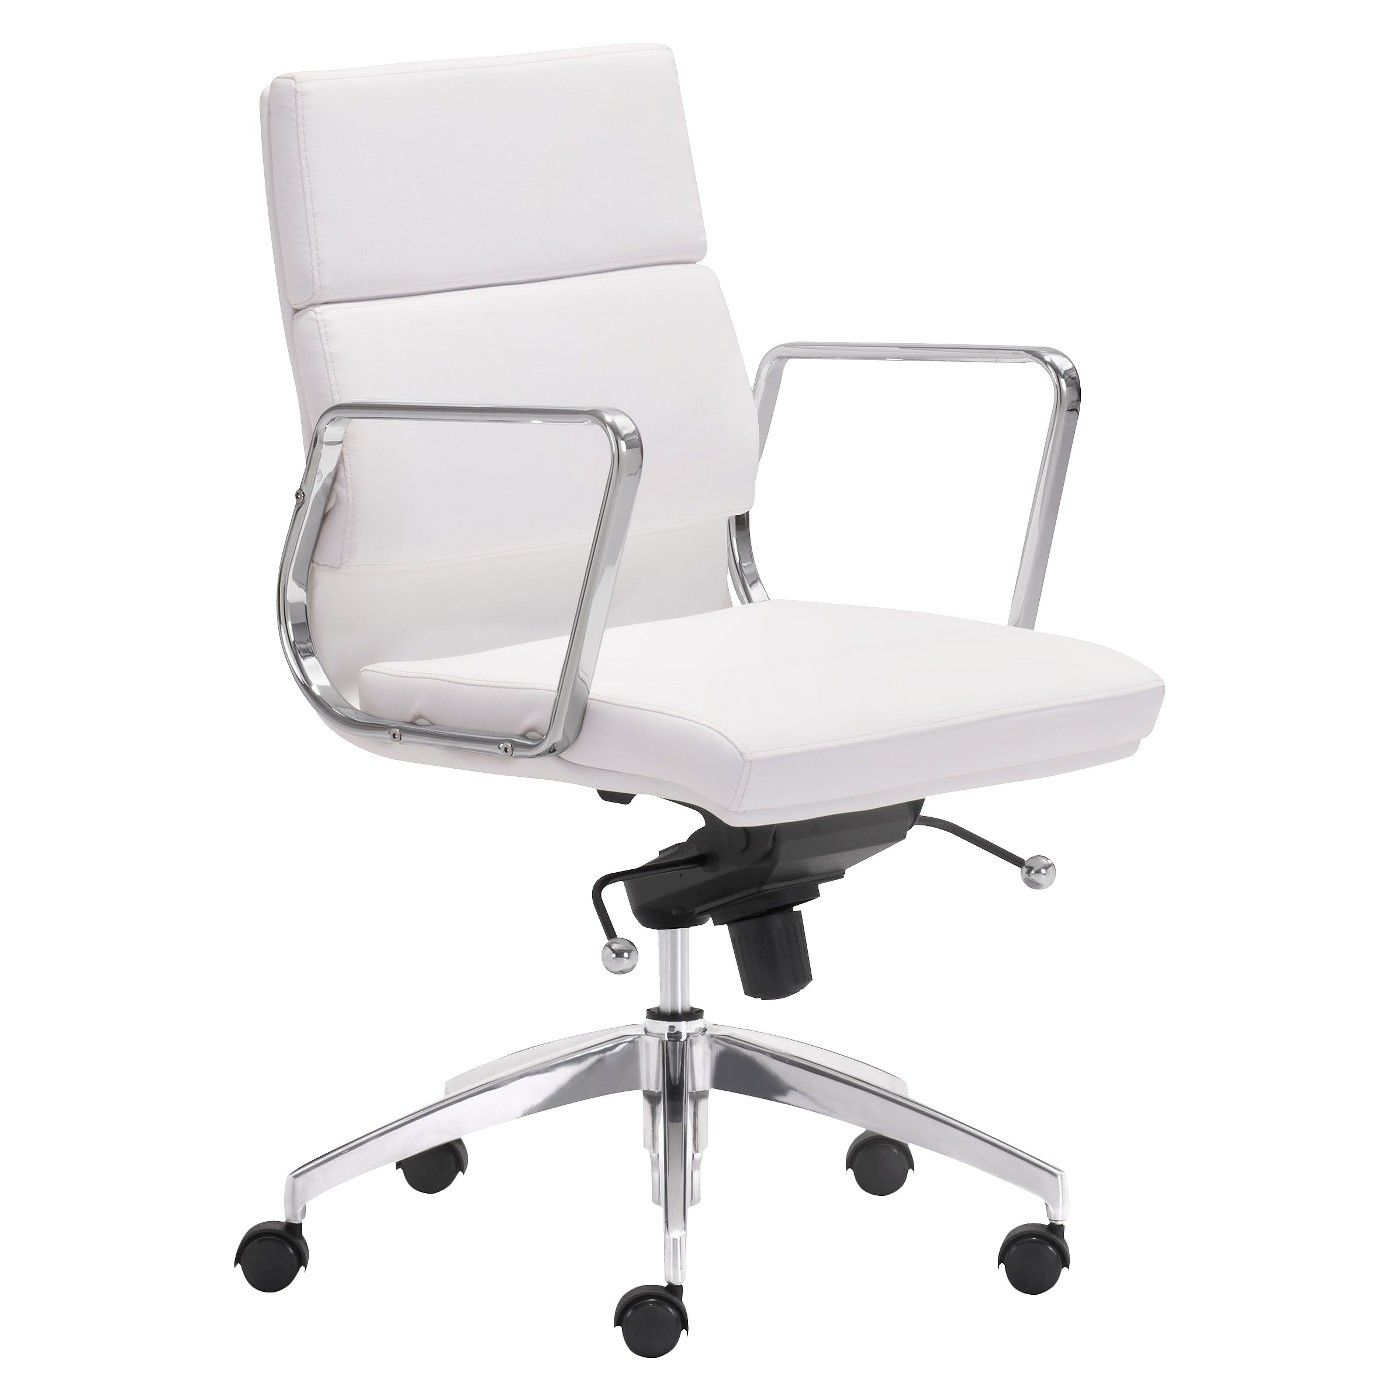 Zuo Engineer Low Back Office Chair Image 1 Of 5 White Office